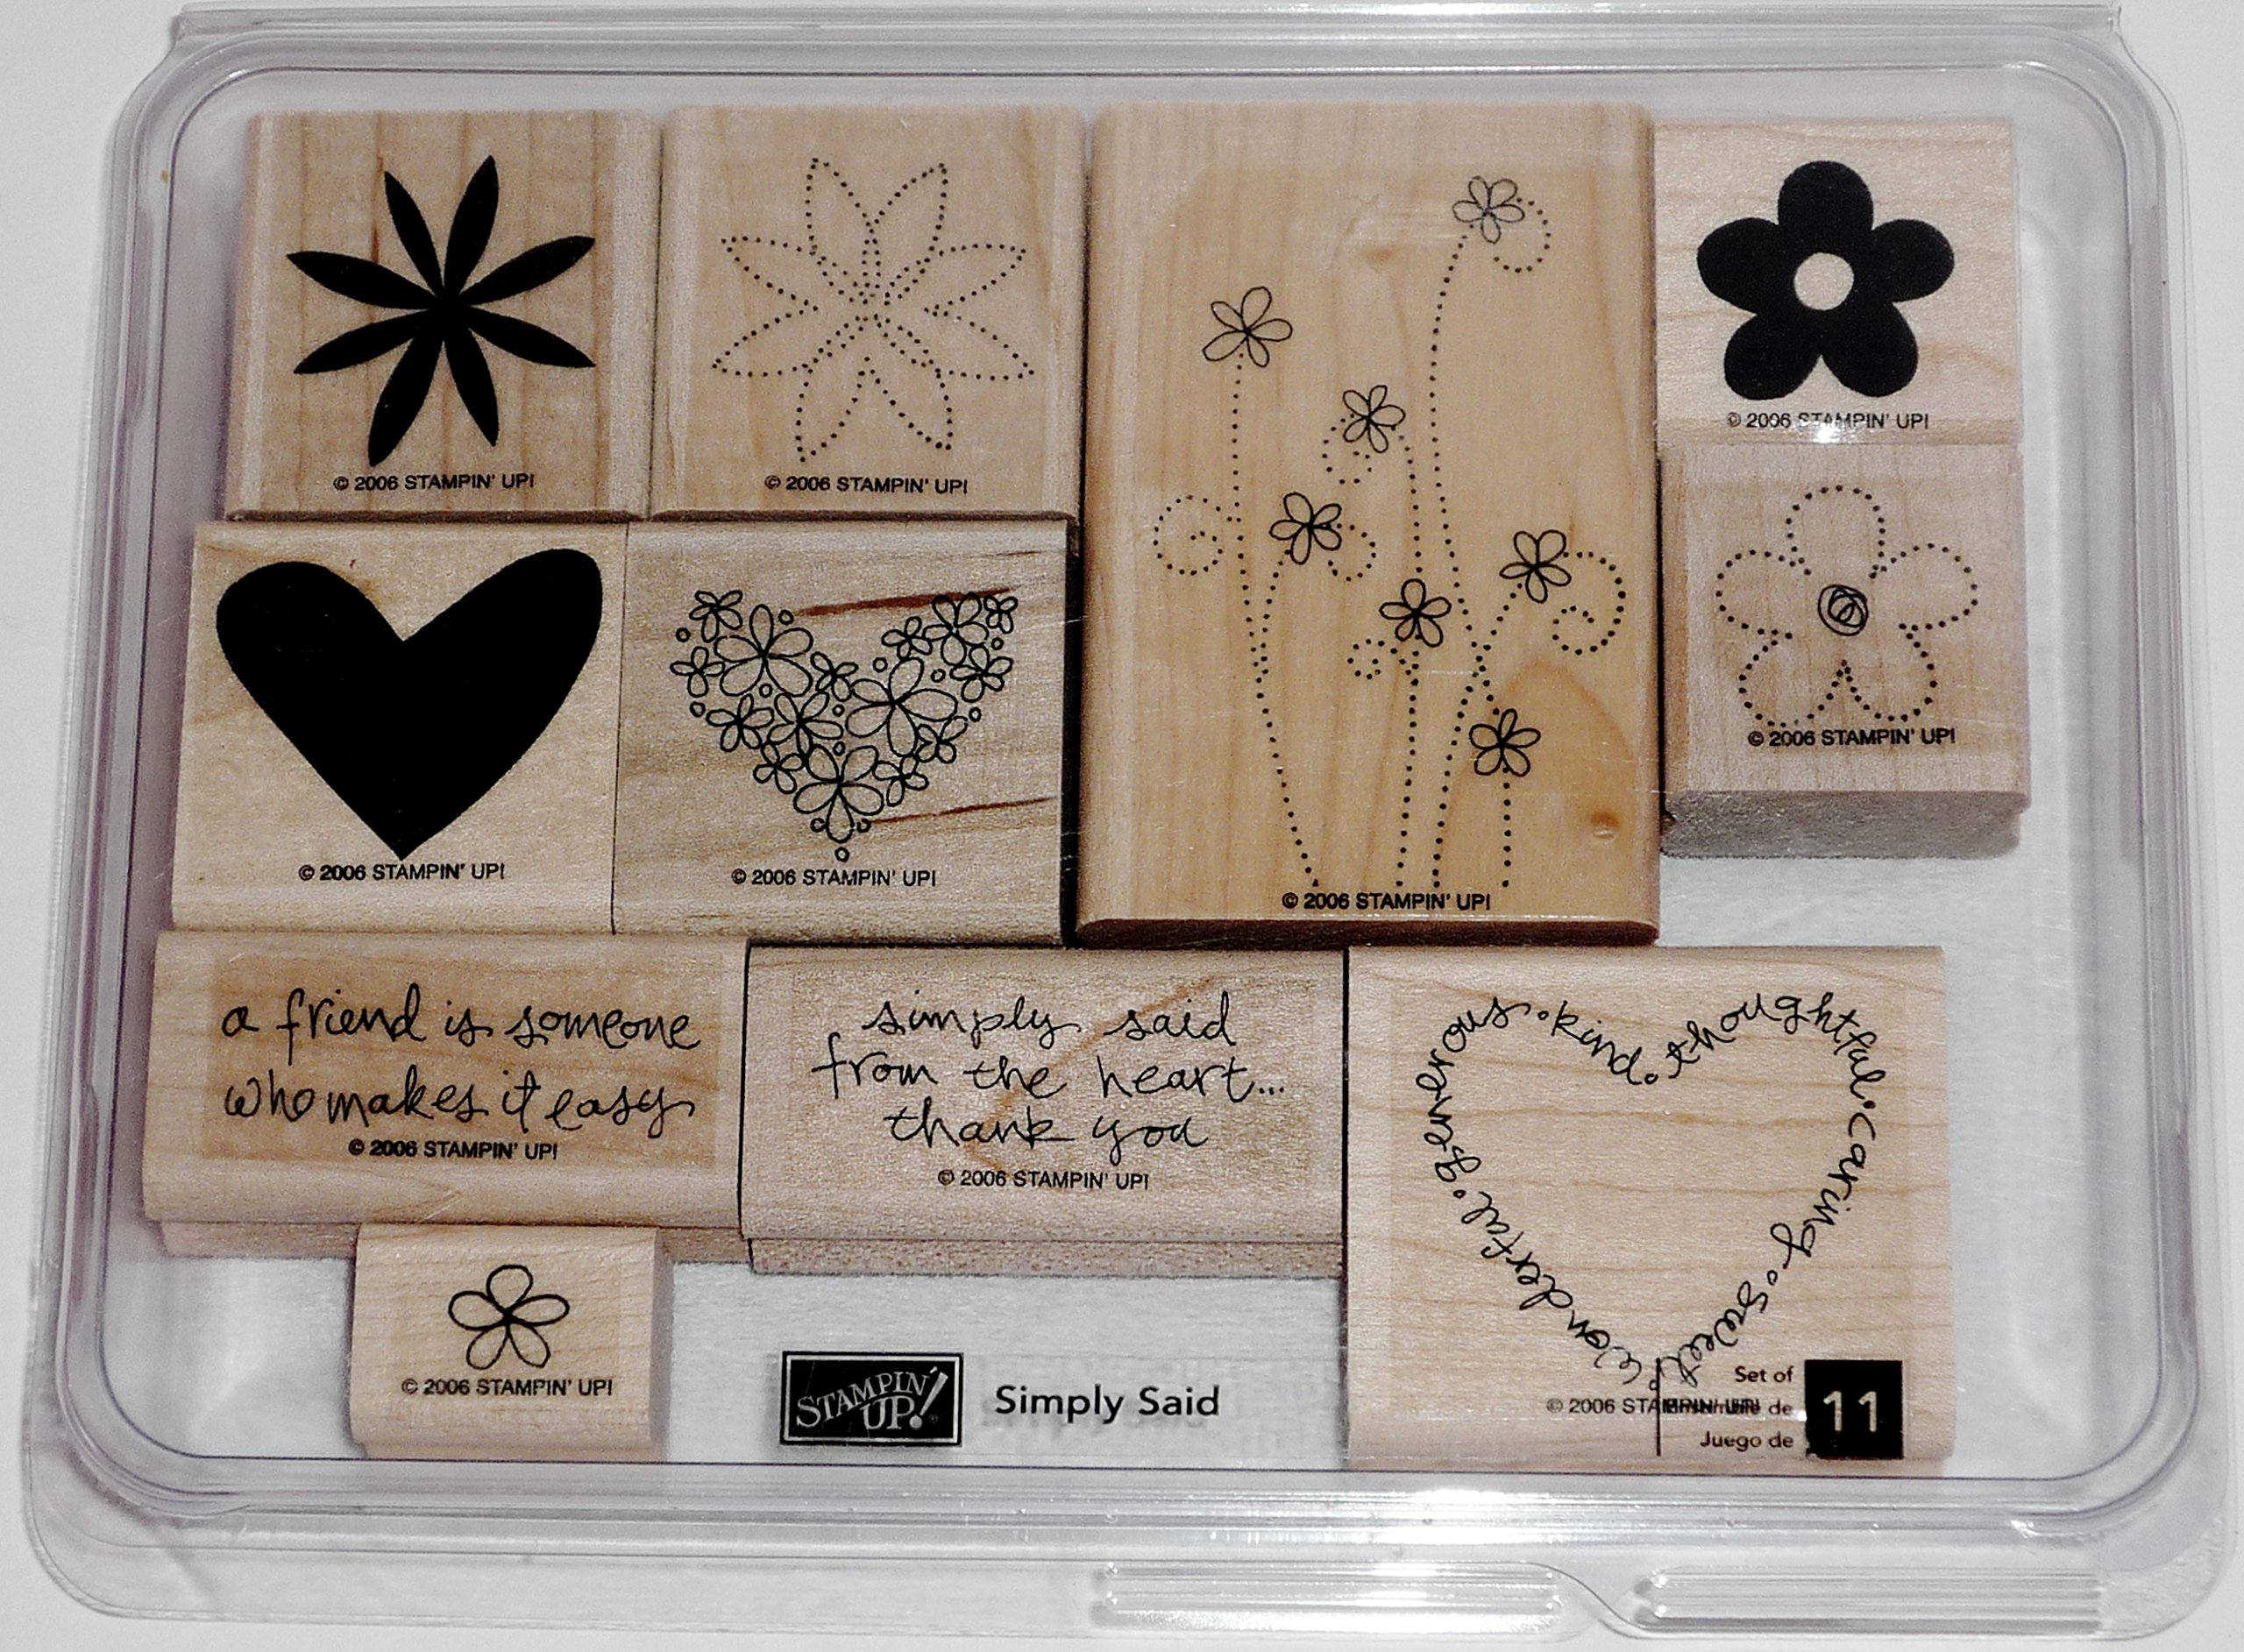 Stampin' Up! Simply Said Wood Mouted Rubber Stamp Set of 11 Hearts Flowers 2006 by Stampin' Up